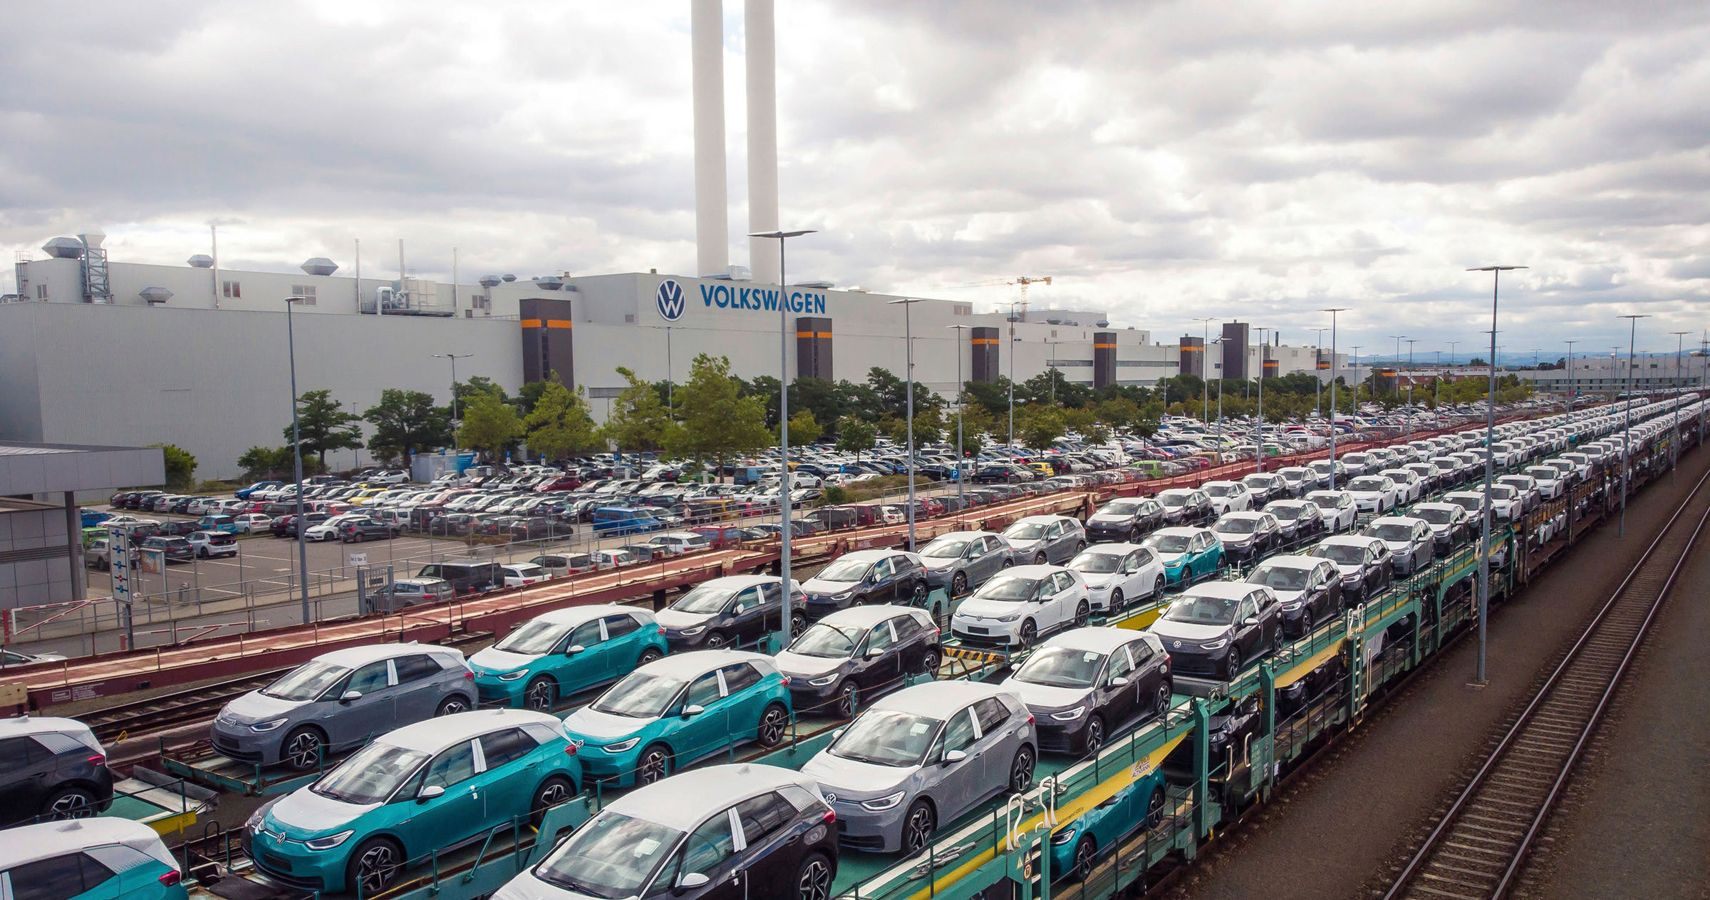 Volkswagen Chugs Along With A Green Conversion Of German Railroad